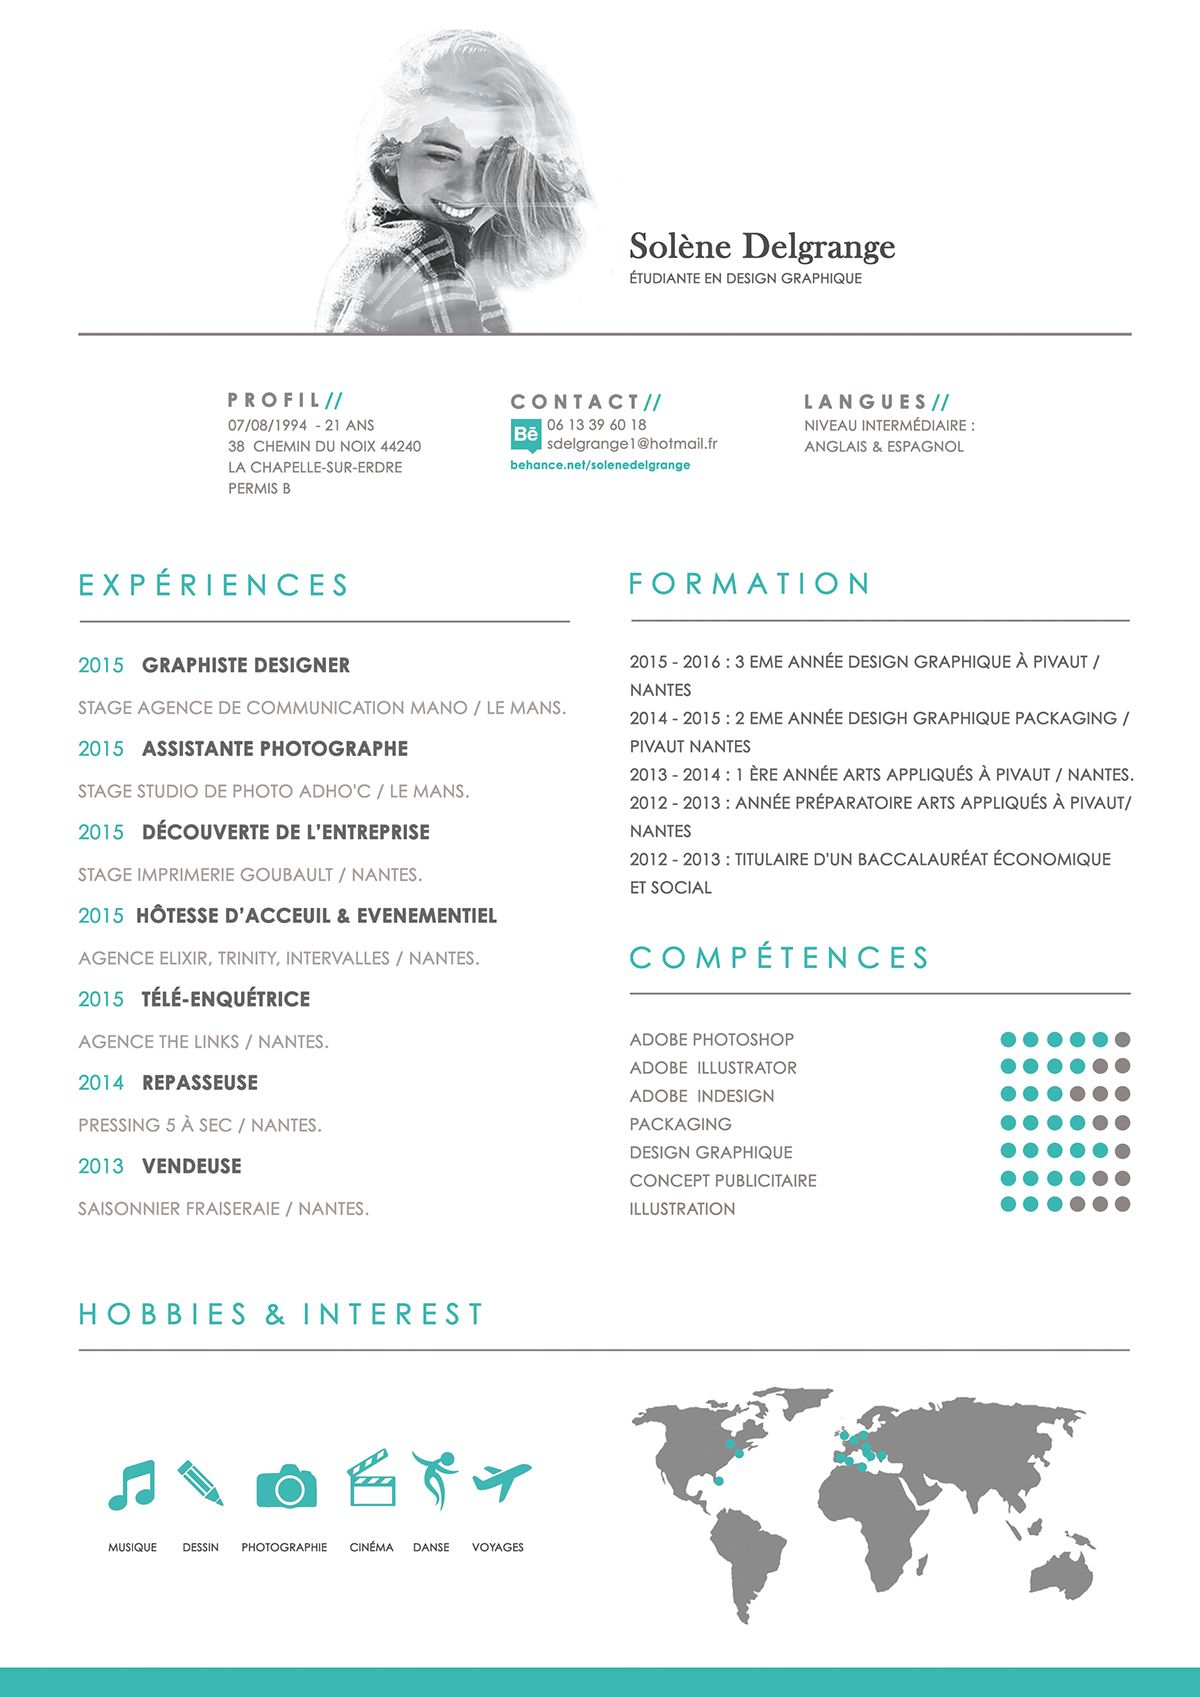 Showcase And Discover Creative Work On The World S Leading Online Platform For Creative Industries Cv Design Resume Resume Template